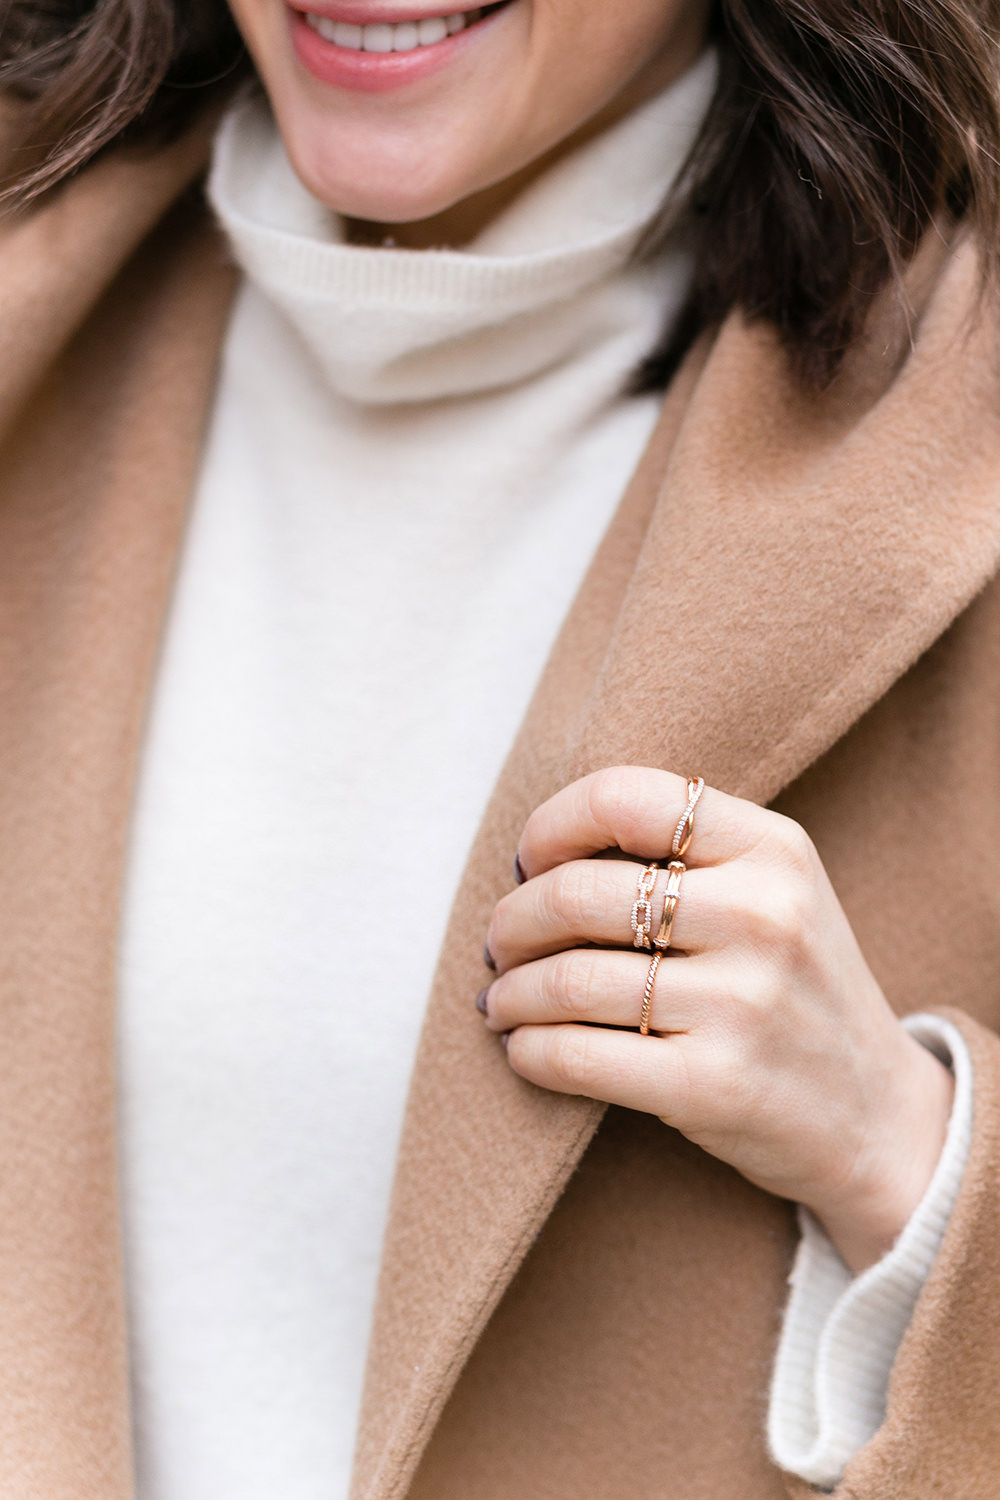 View More: http://emiliajane.pass.us/danielle-rings